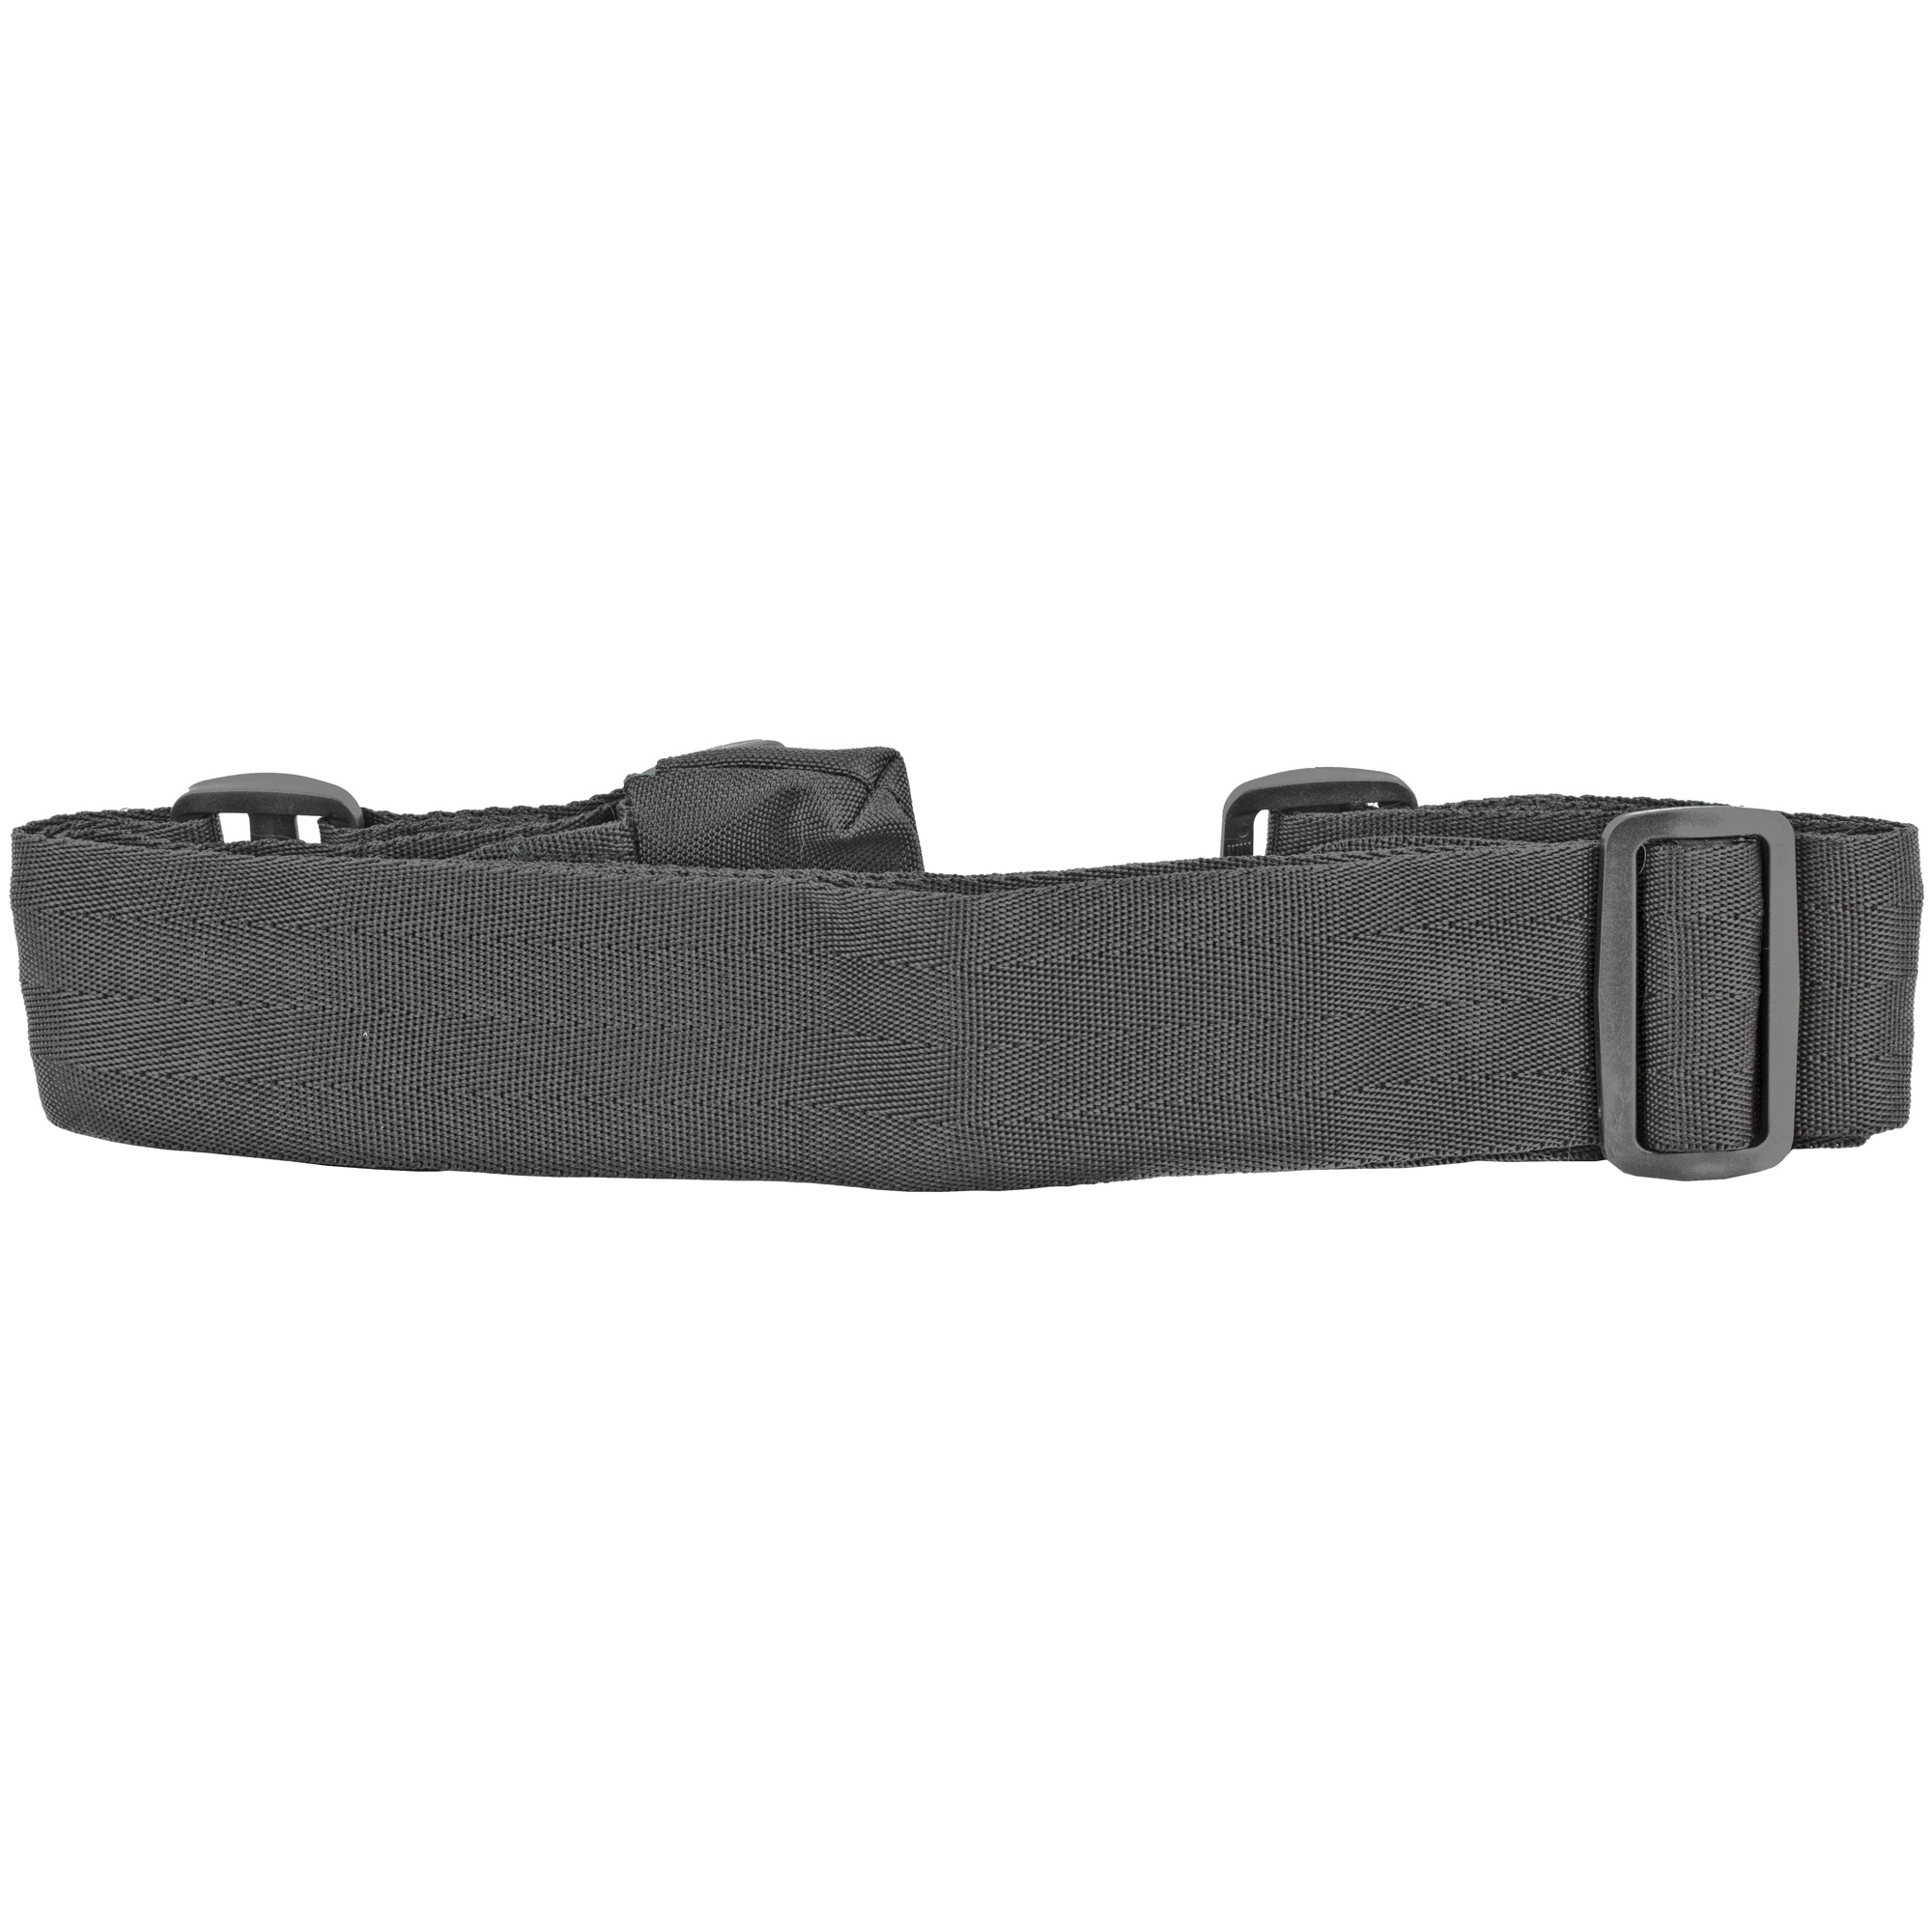 Fab Def Tactical Rifle Sling